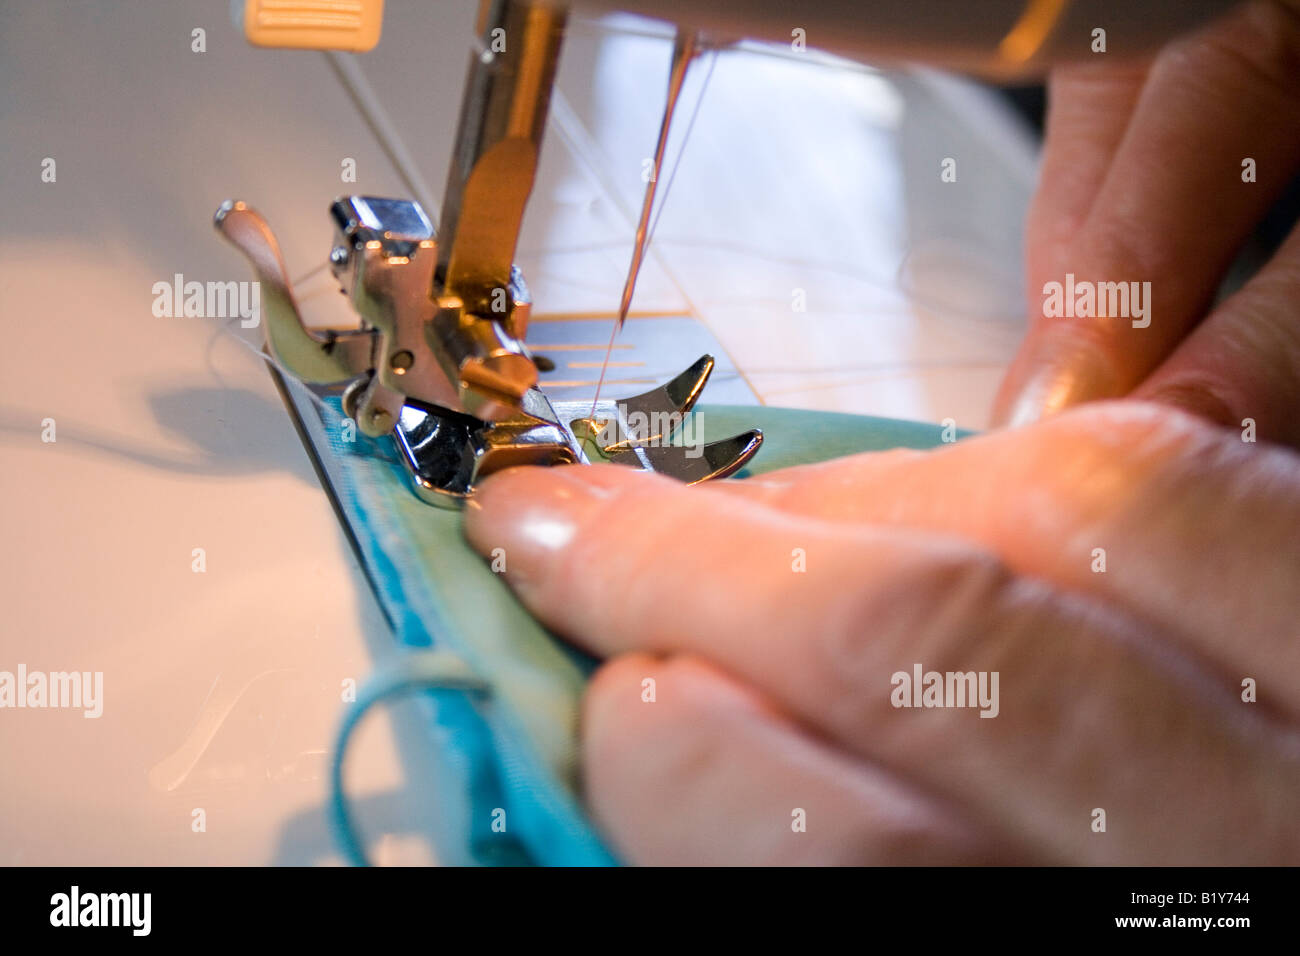 sewing alterations on a bridesmaids dress - Stock Image